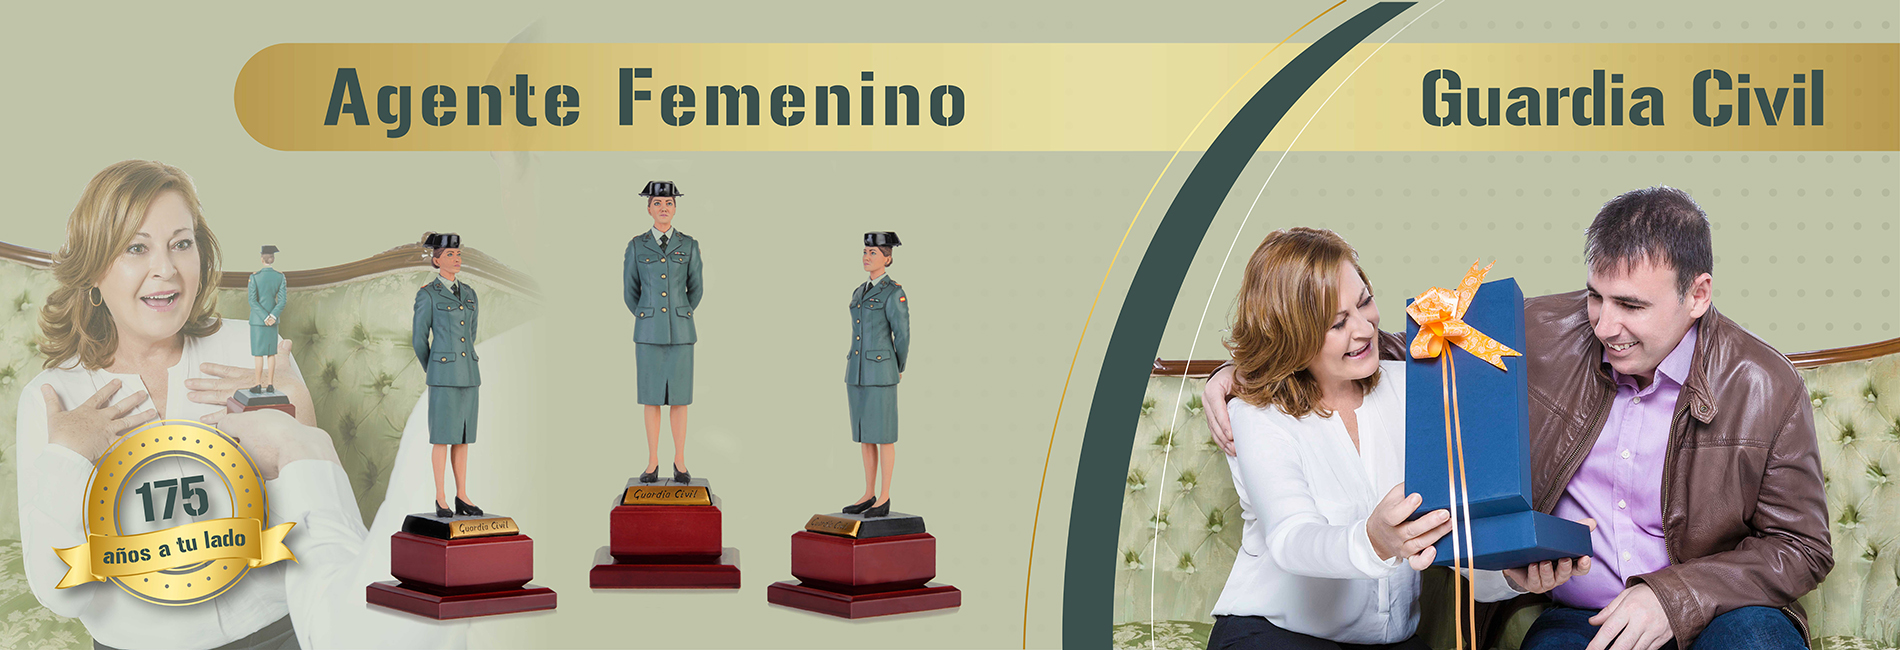 Guardia Civil - Agente Femenino